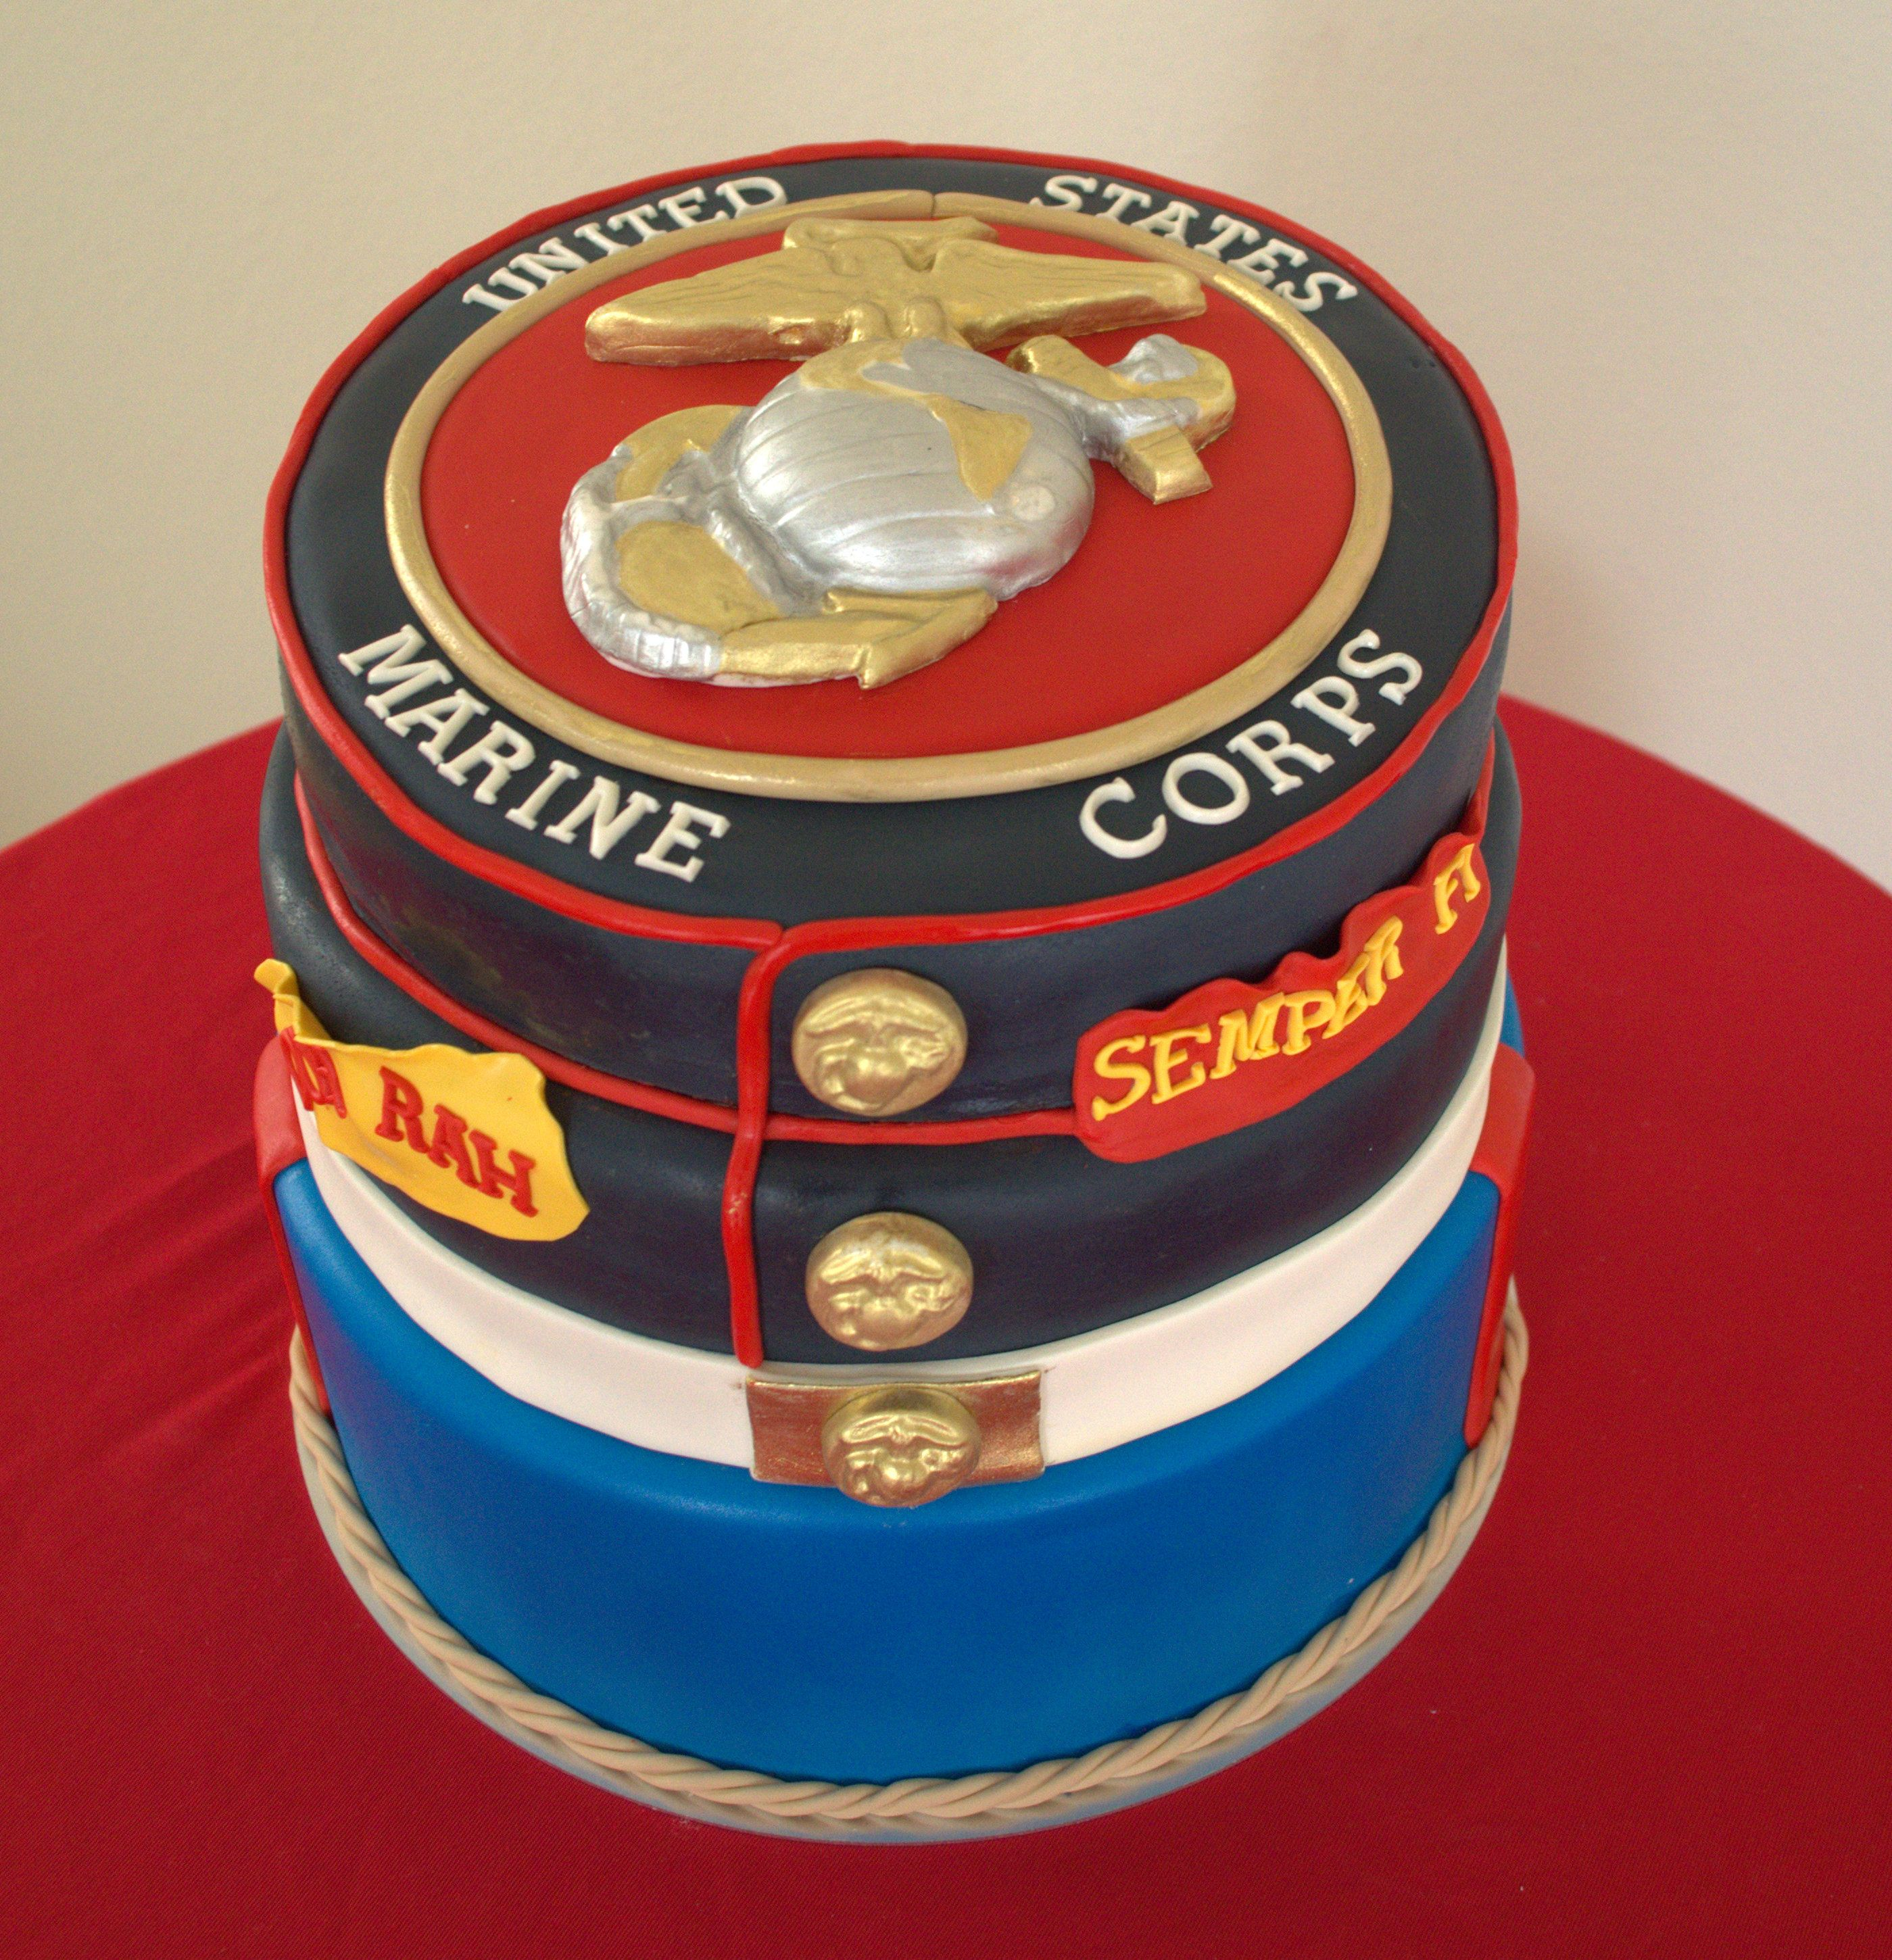 US Marine Corp Cake US Marince Cake DreamCakes By Millie